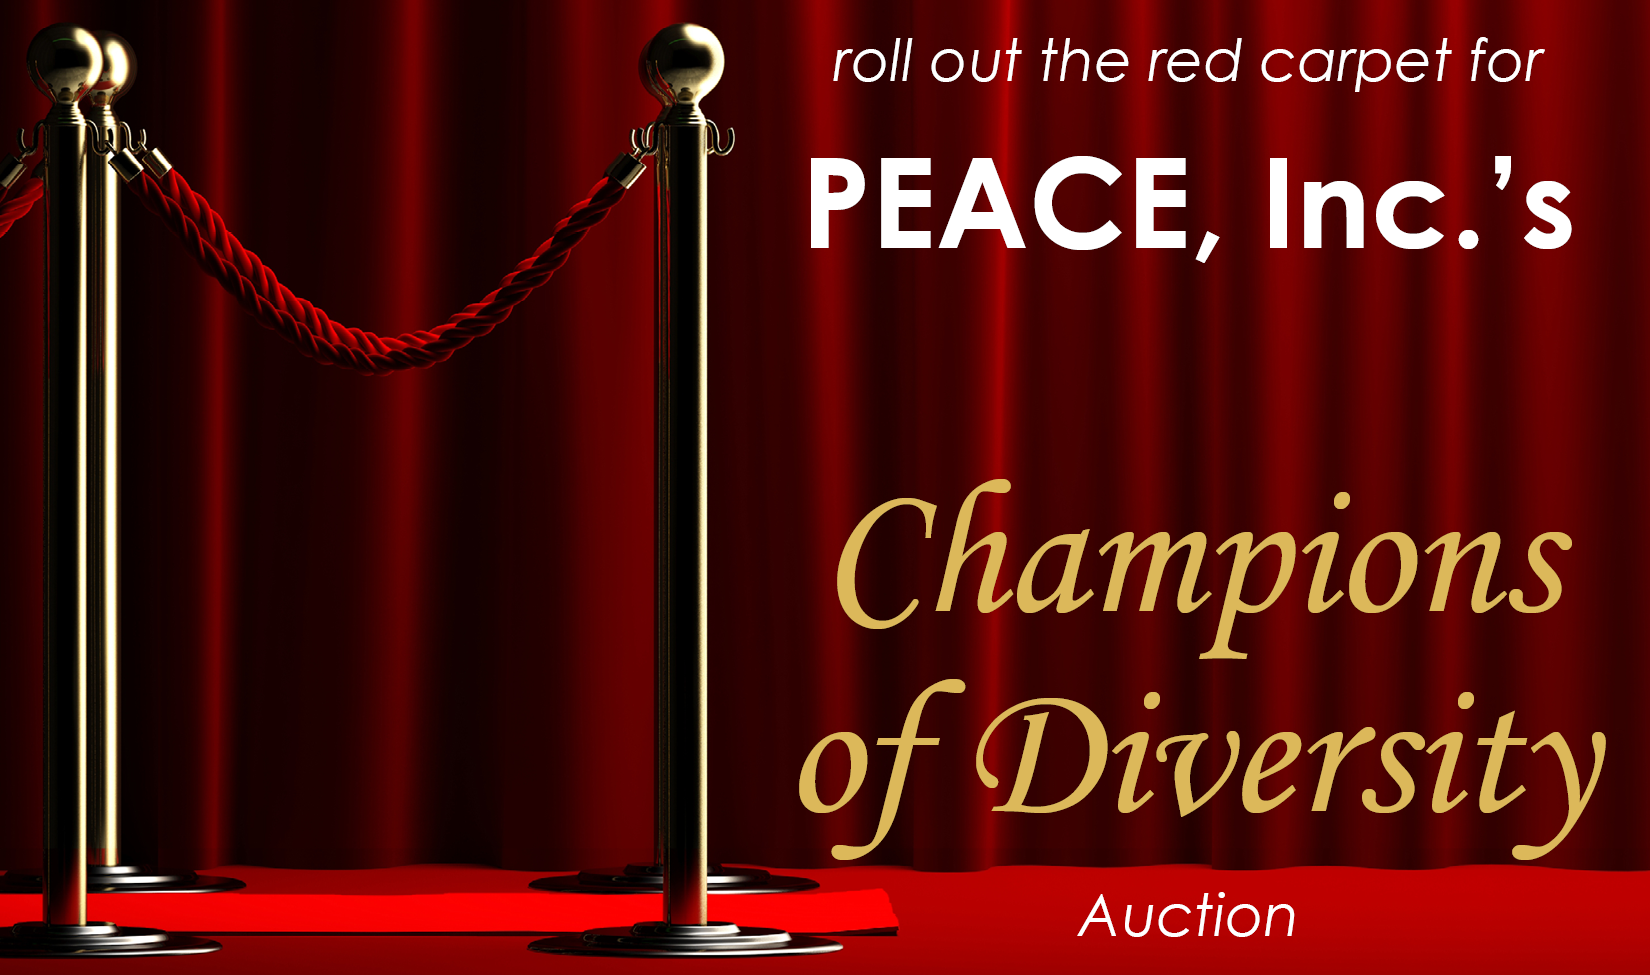 Champions of Diversity Online Auction